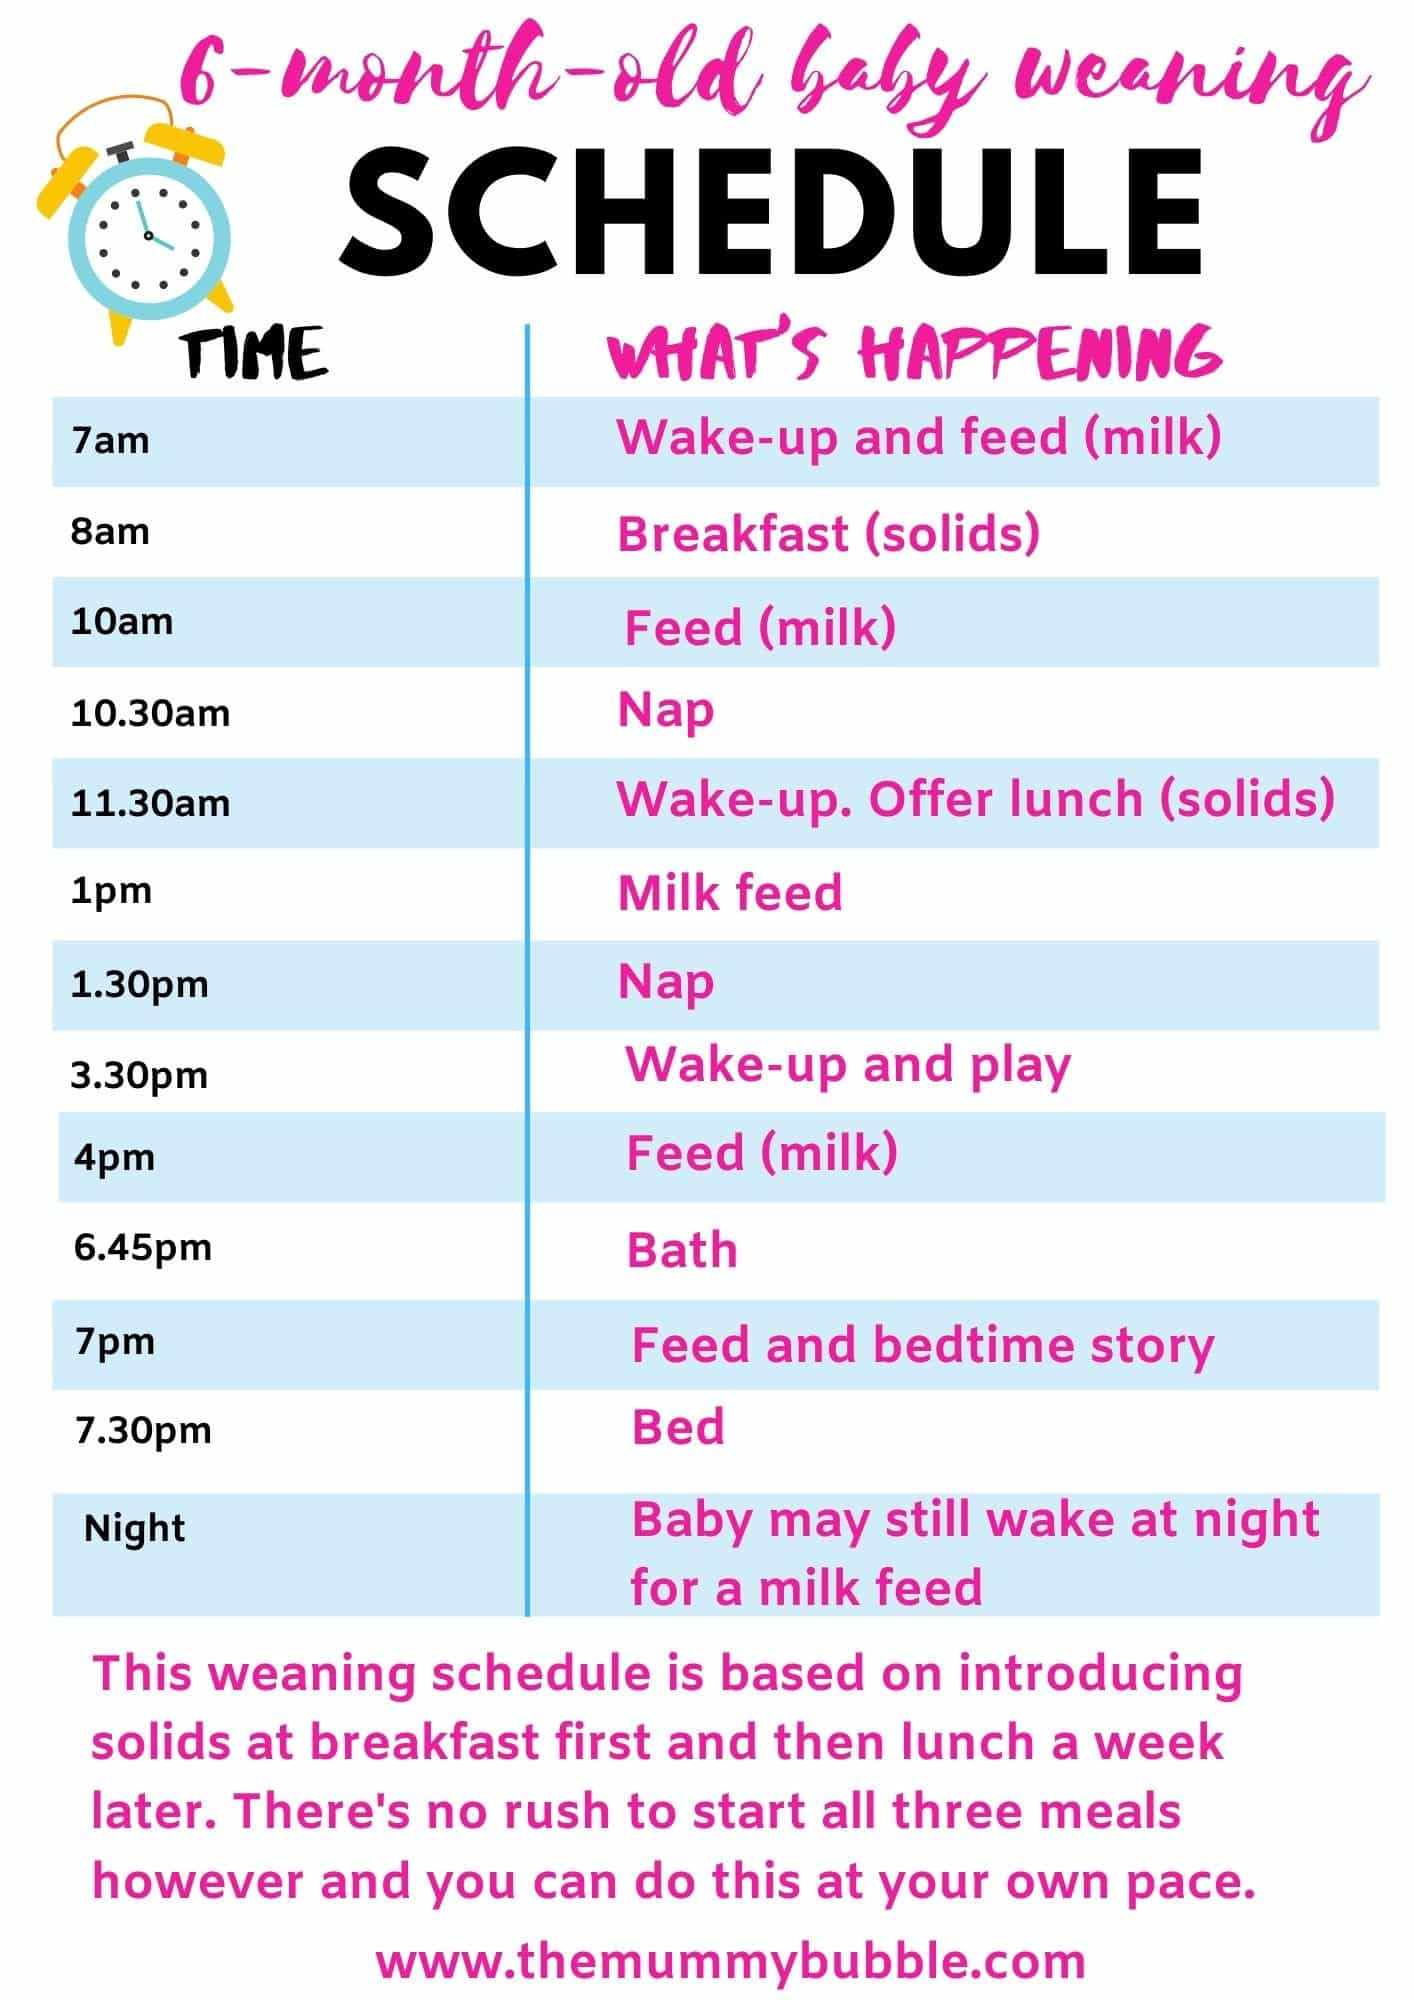 Perfect Daily Schedule For A 6 Month Old Baby